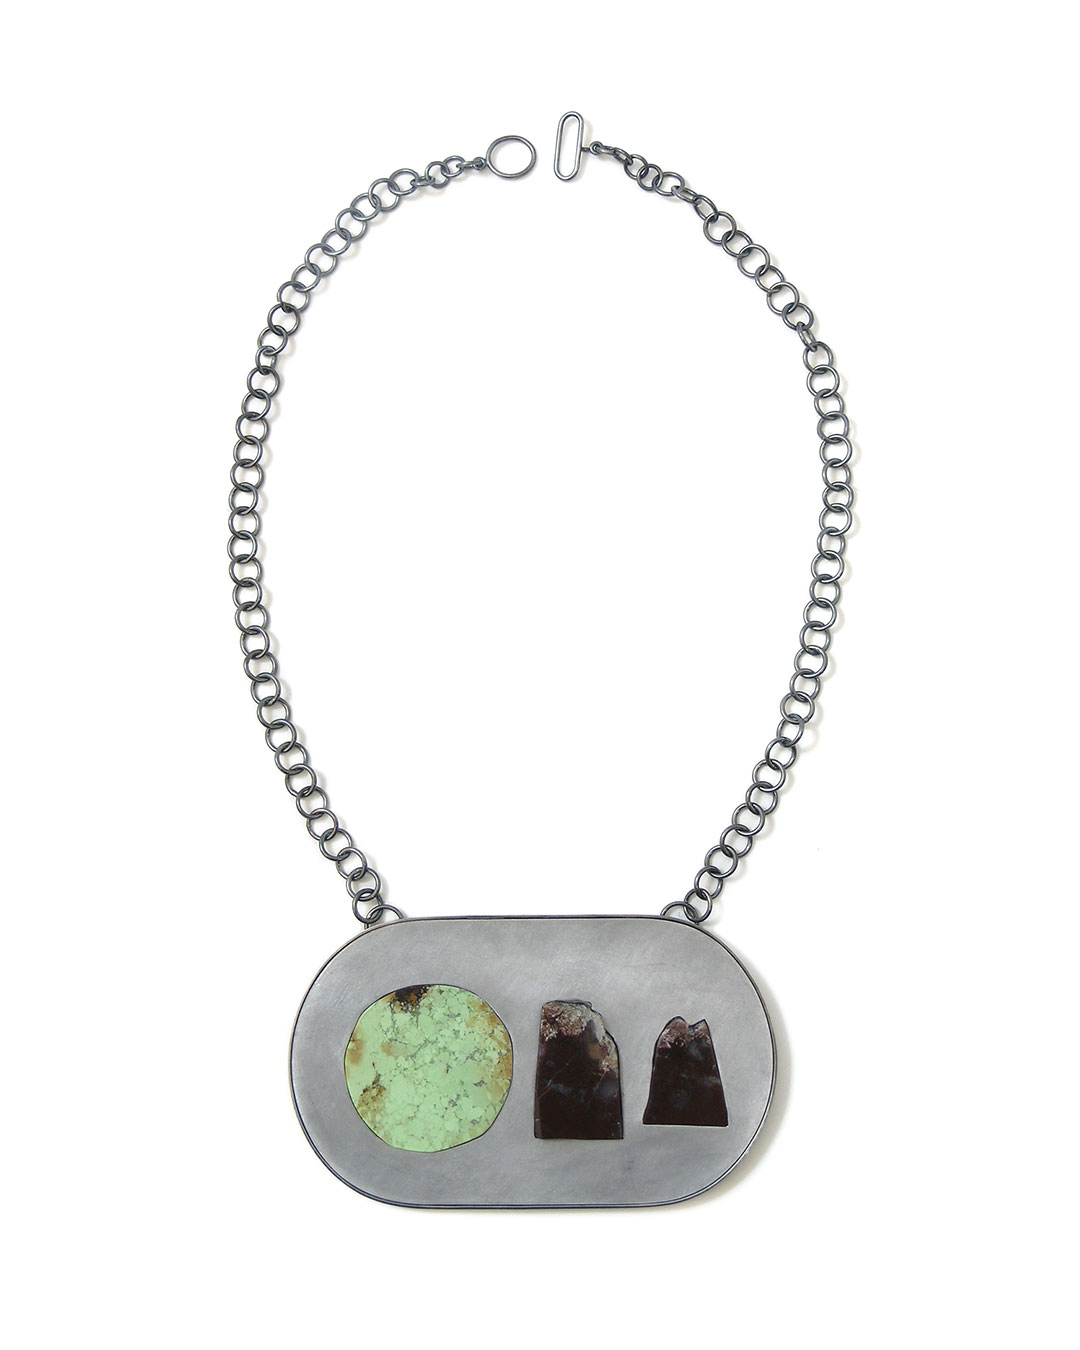 Sybille Richter, Ravary, 2008, necklace; silver, aluminium, chrysoprase, agate, 68 x 115 x 5 mm, €1410